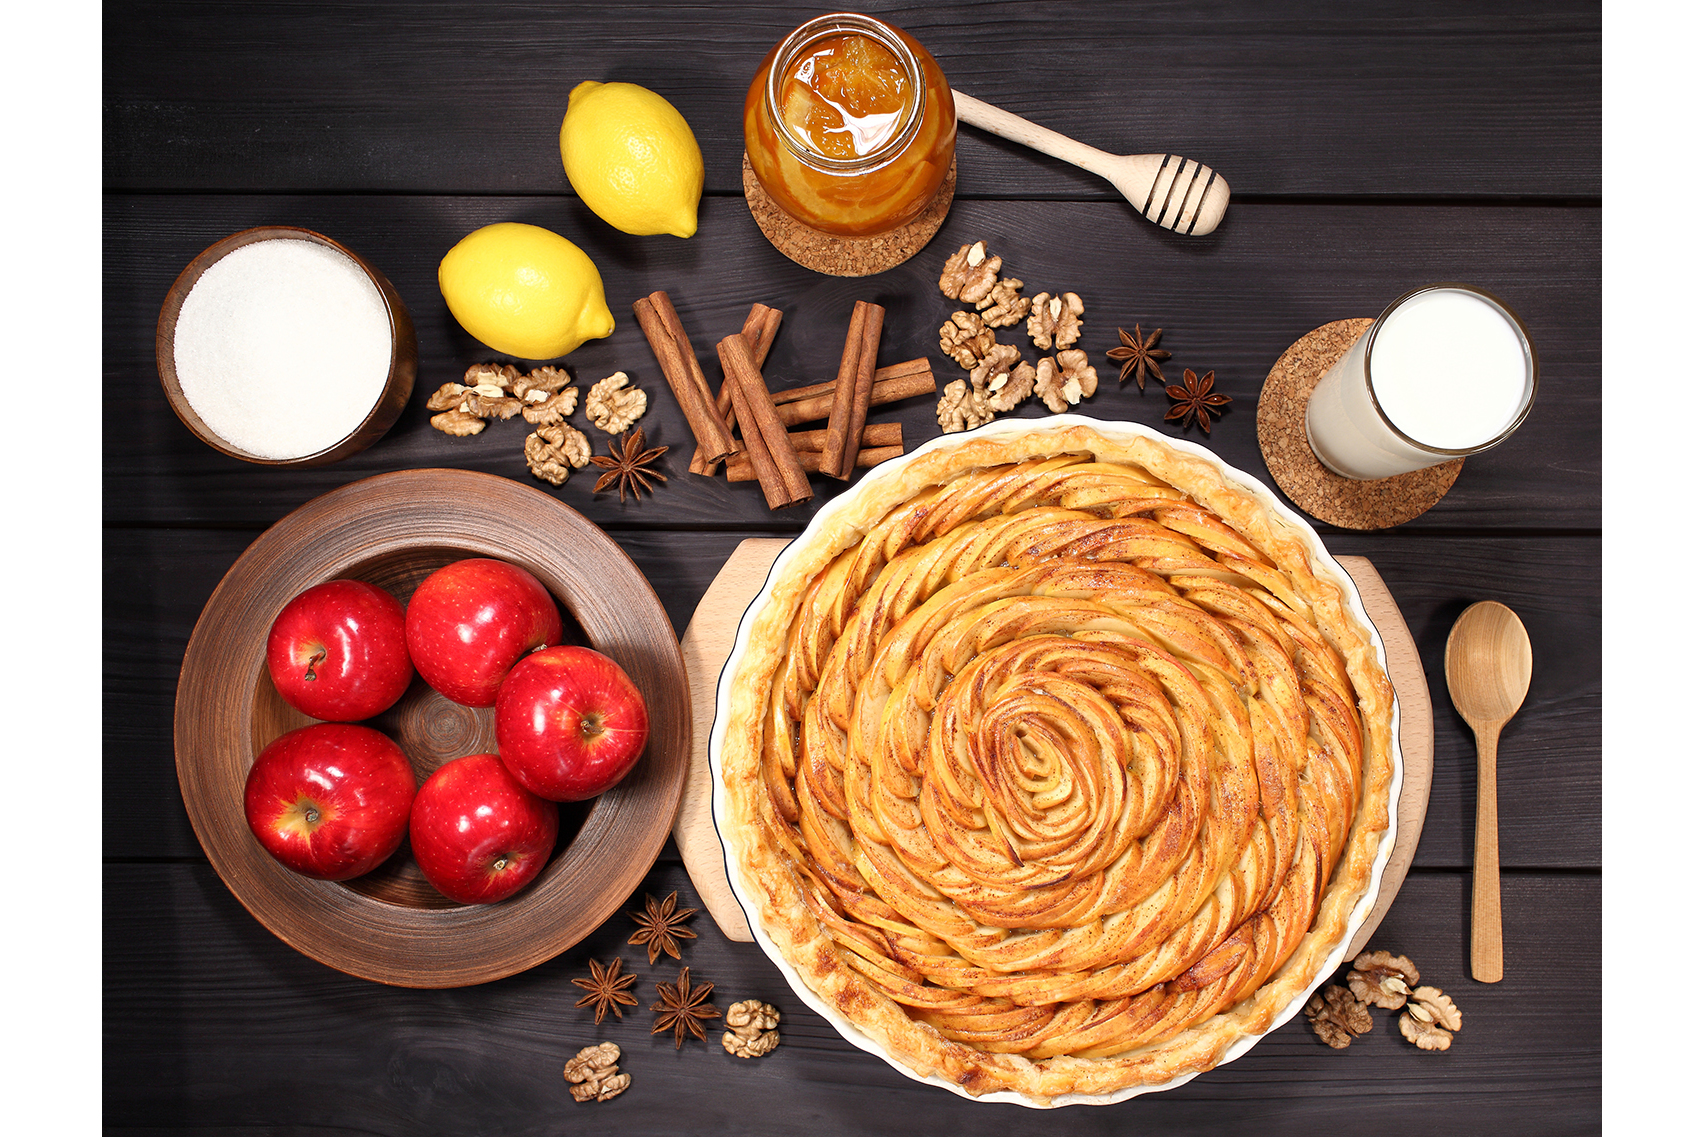 Set 12 photos Apple Pie and raw ingredients for baking. Sweet food series. Dessert. Top view example image 13